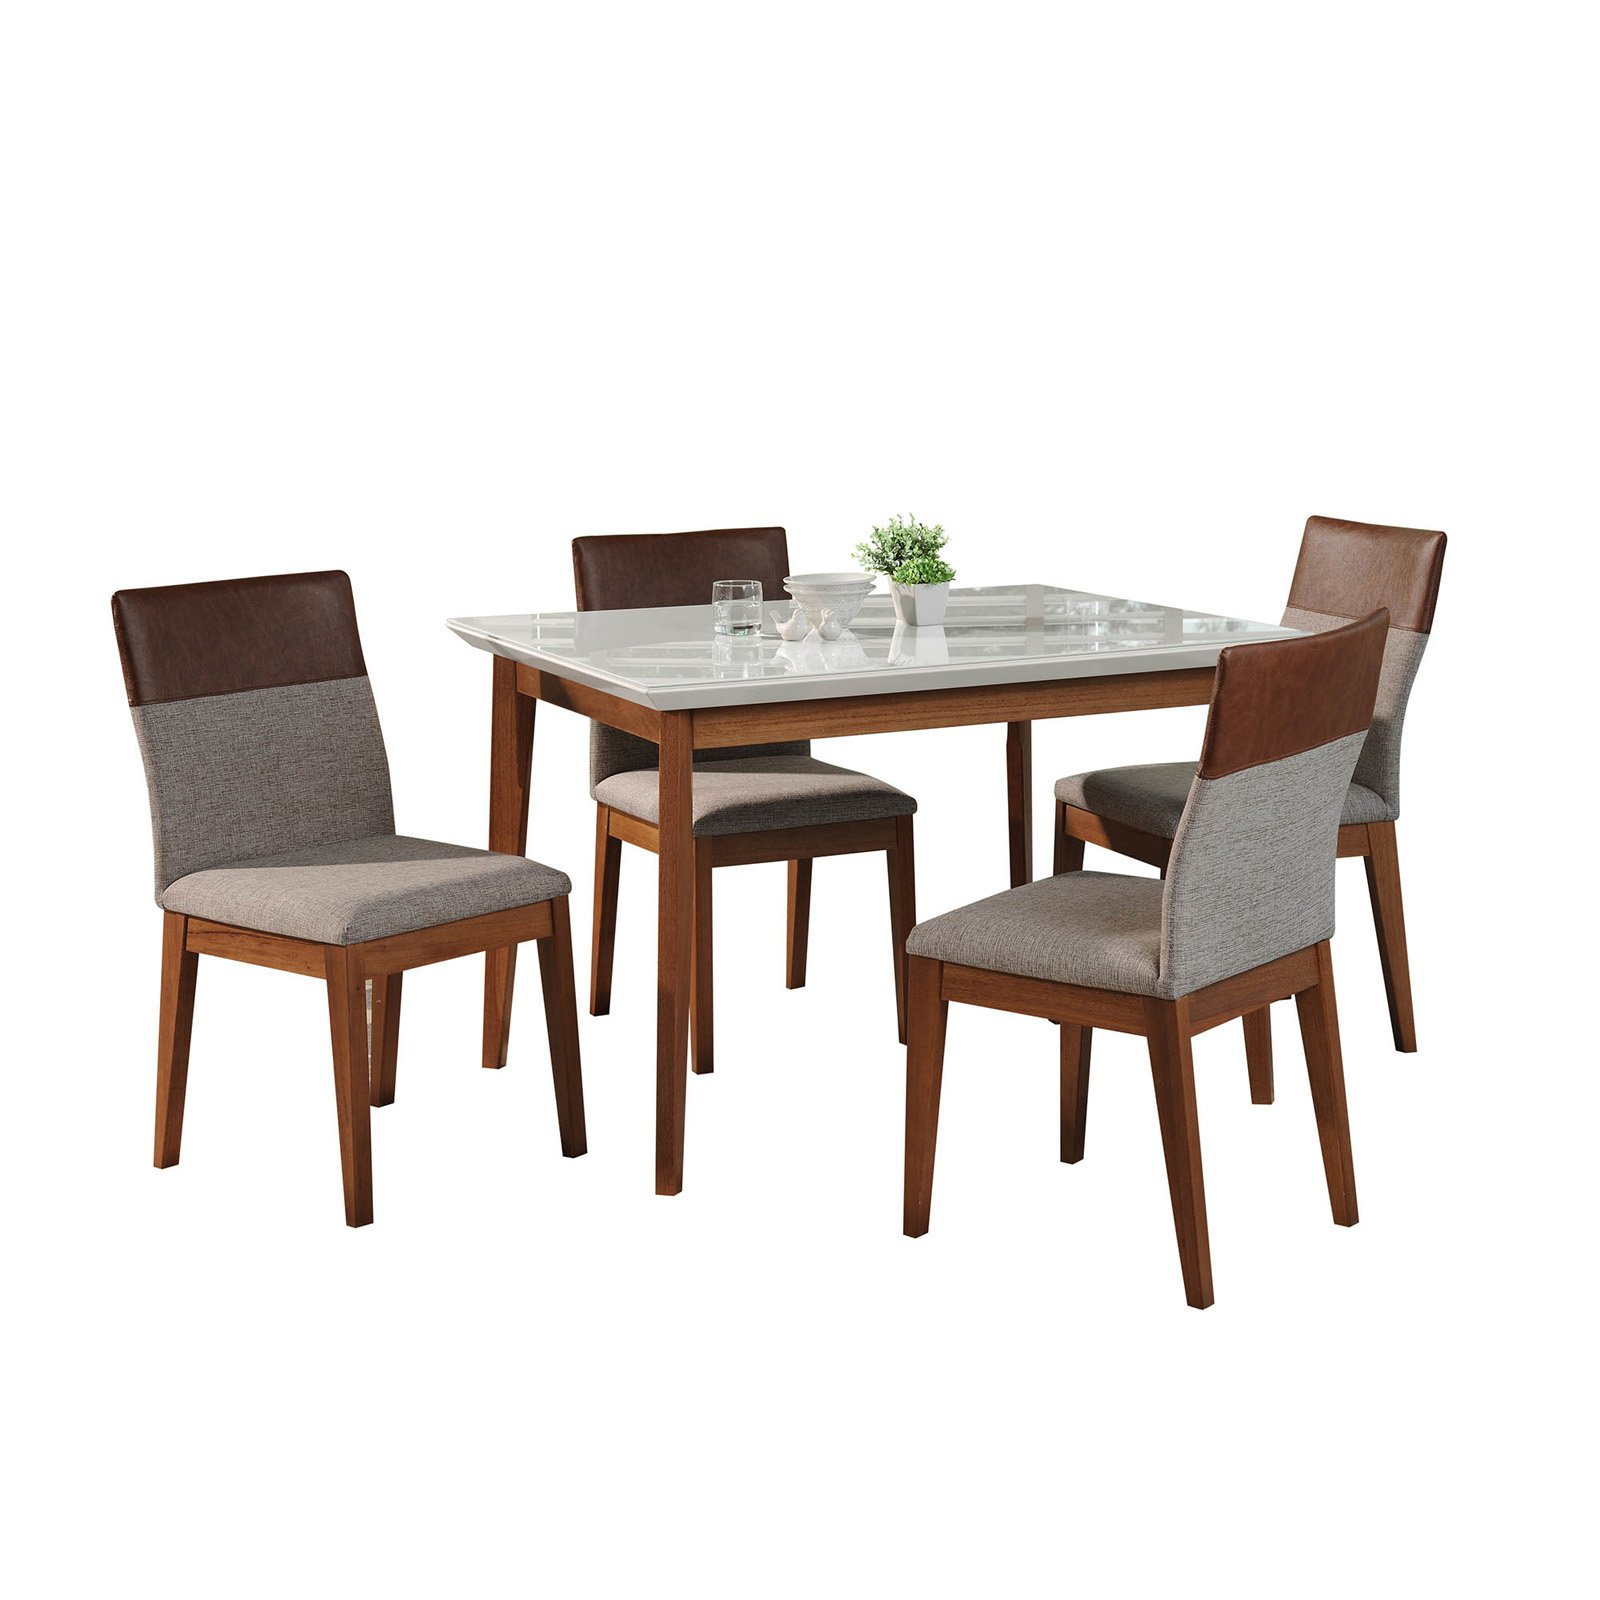 Manhattan Comfort Lillian and Duke 5 Piece Dining Table Set